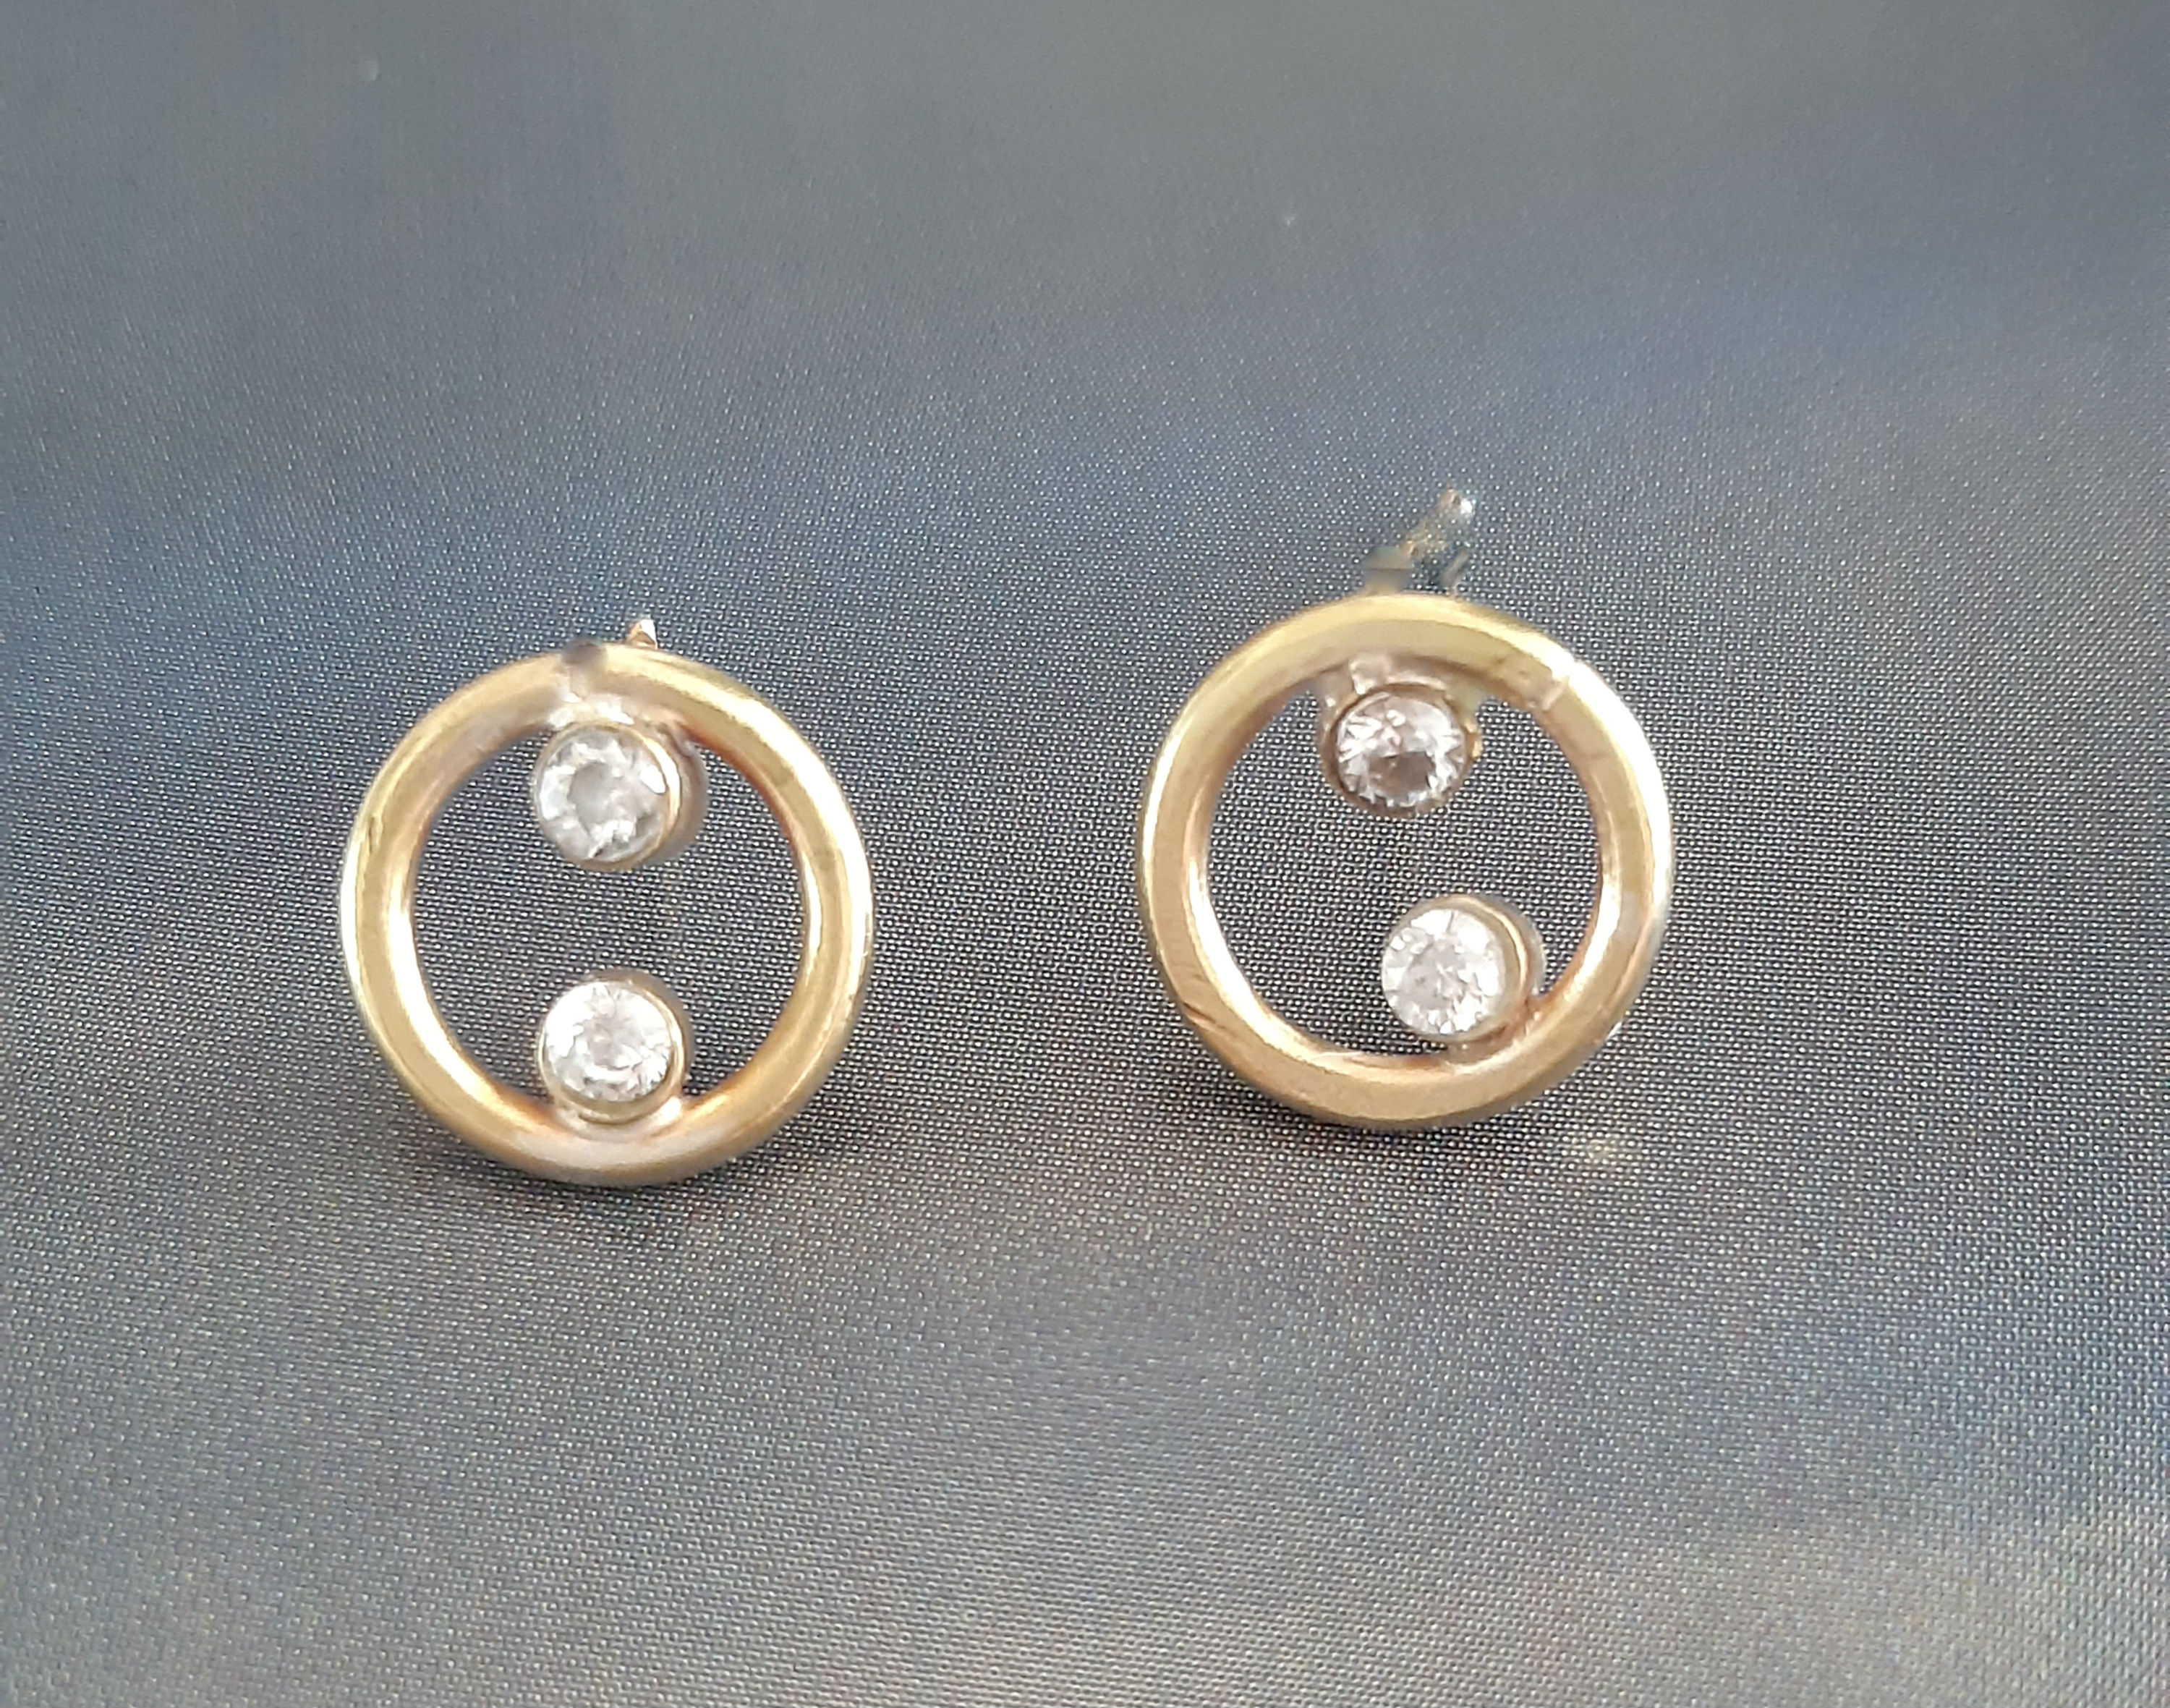 Castor small circle earrings with 2 diam